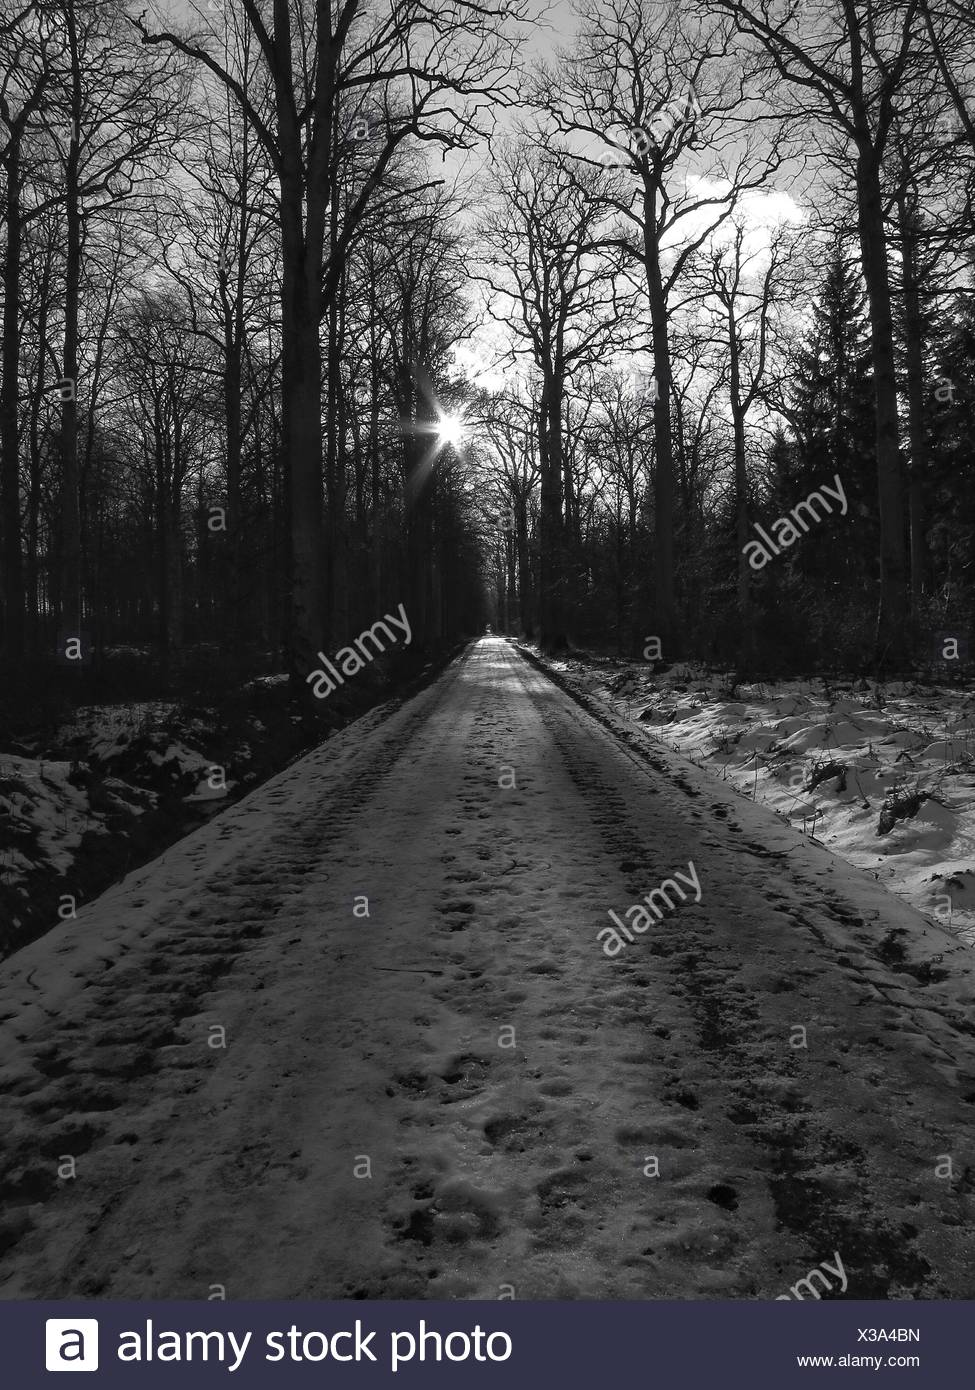 Snow Covered Road Passing Through Forest - Stock Image